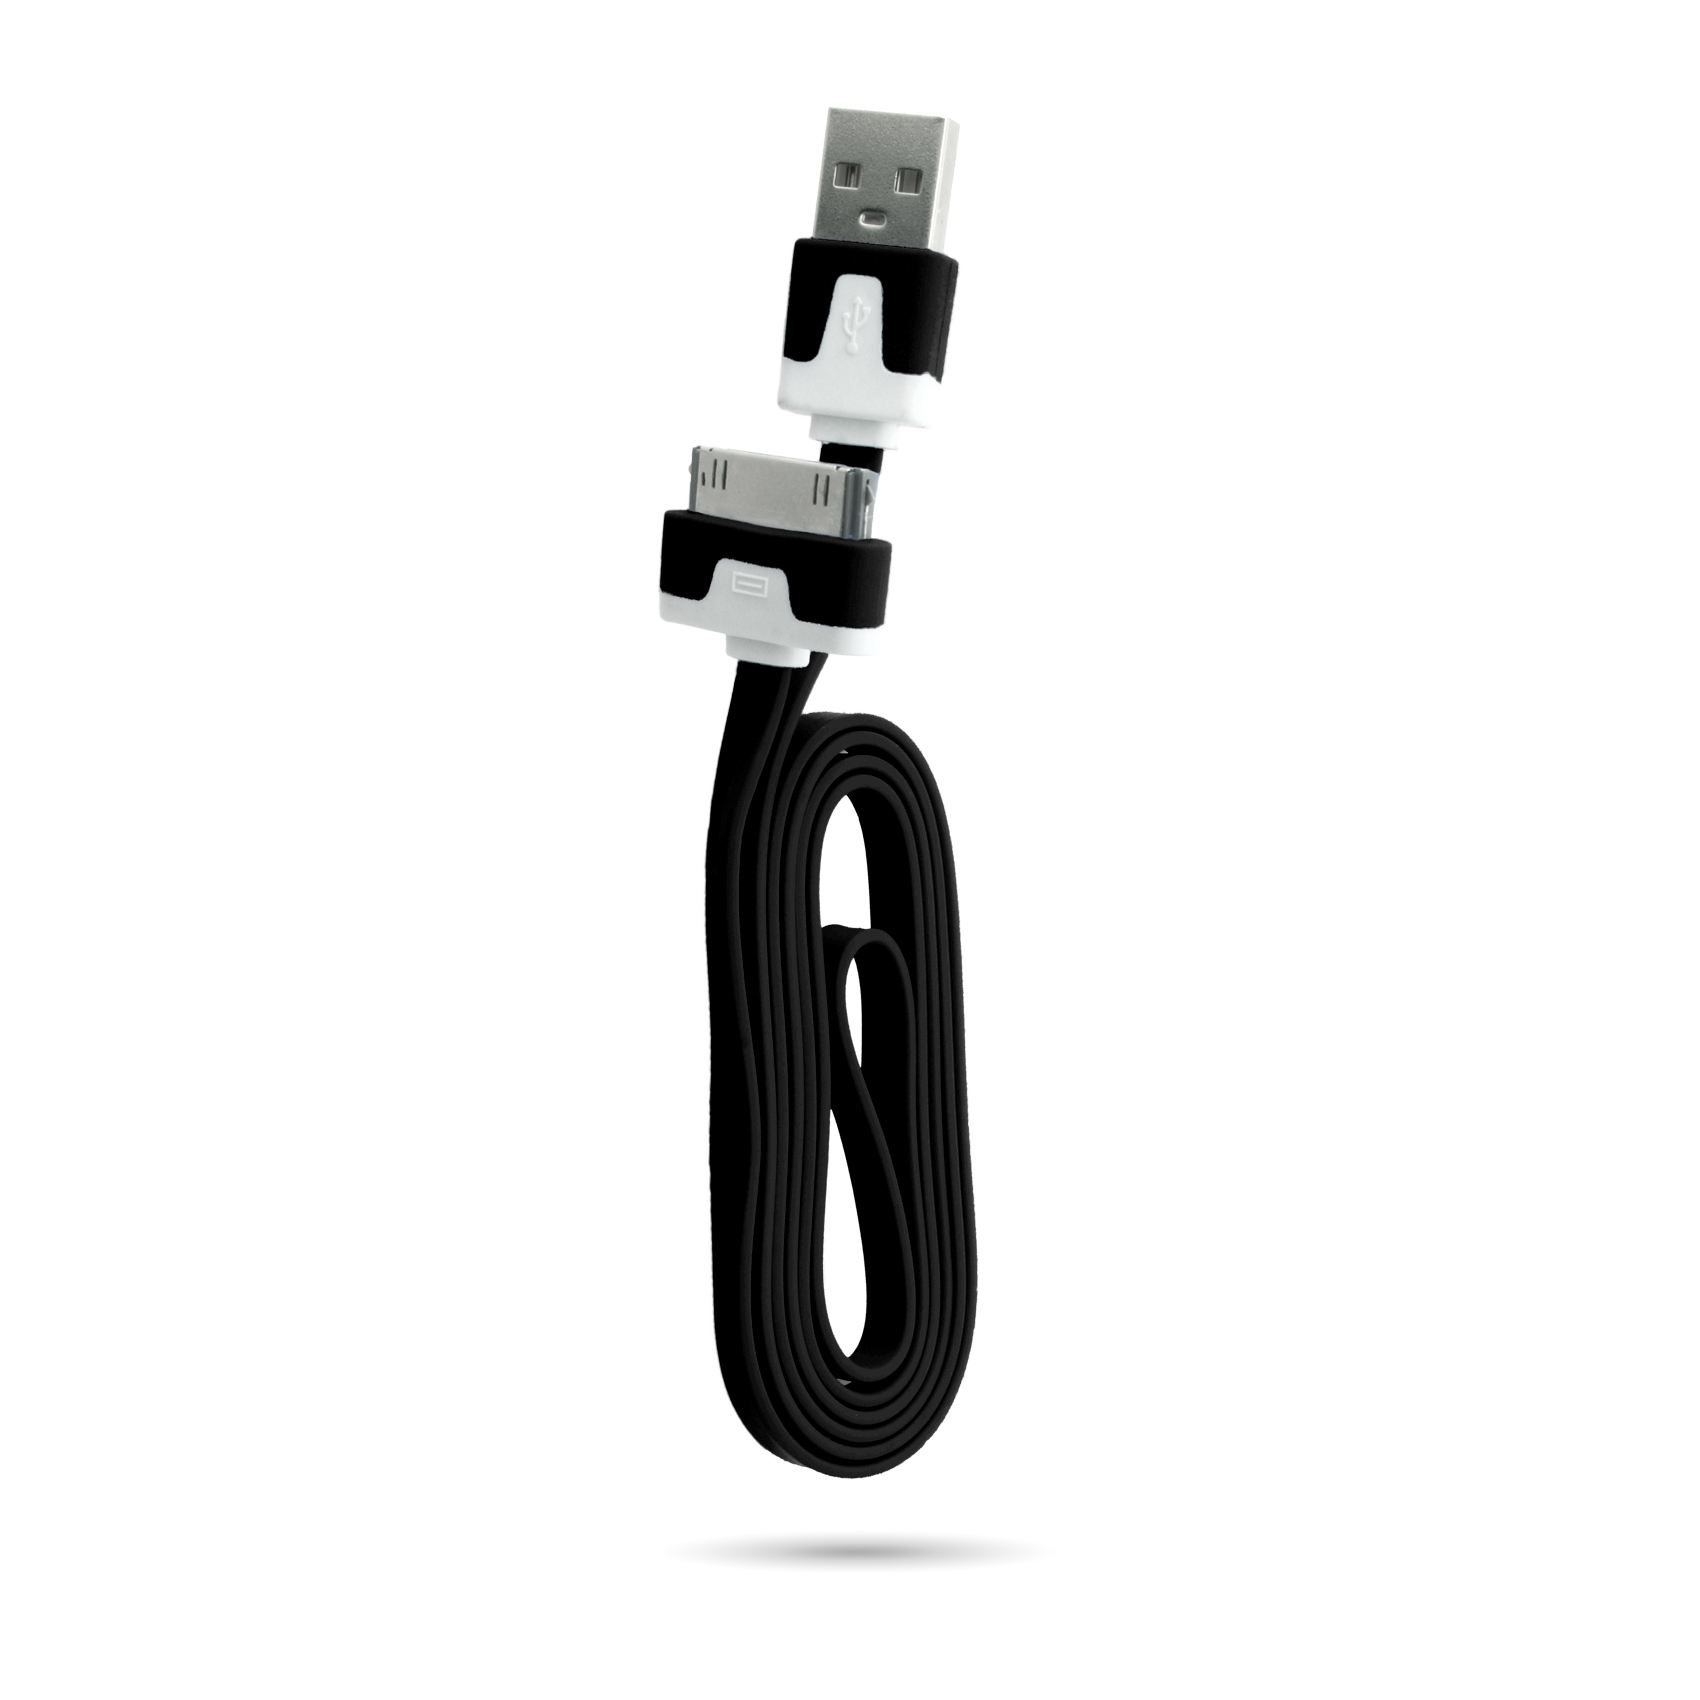 1M-2M-3M-METER-FLAT-NOODLE-SYNCING-DATA-USB-CHARGER-CABLE-FOR-APPLE-IPHONE-4S-4